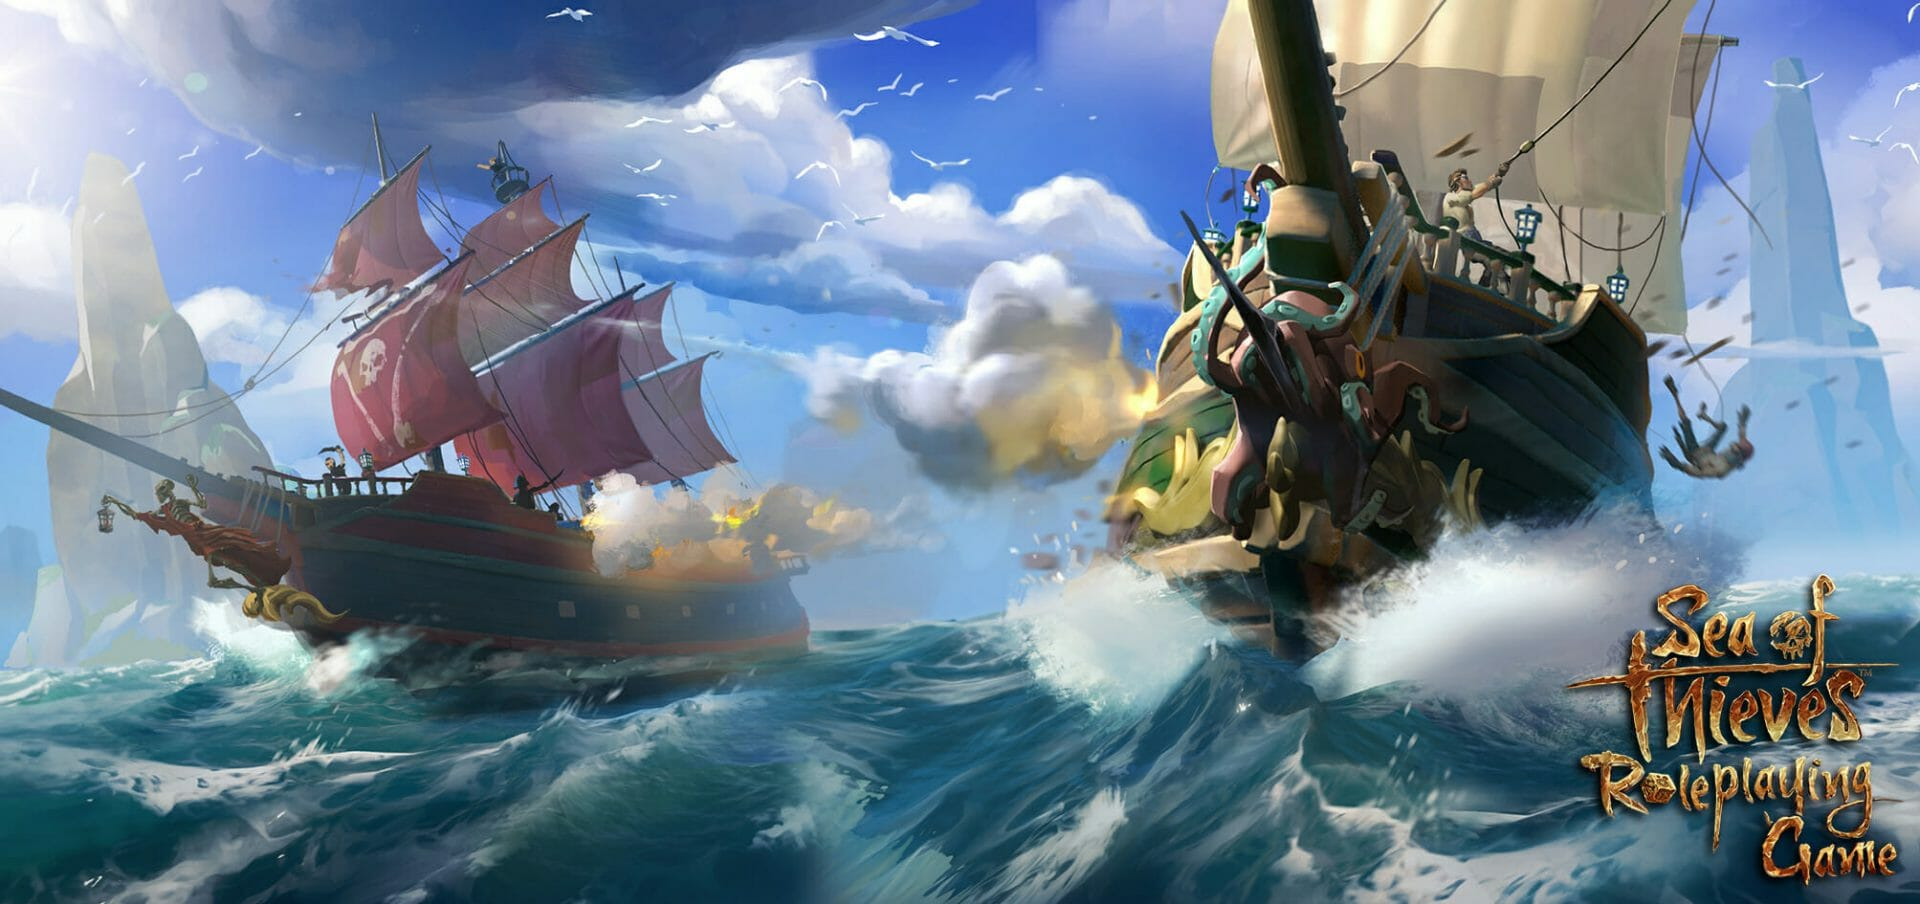 Sea of Thieves pen and paper game